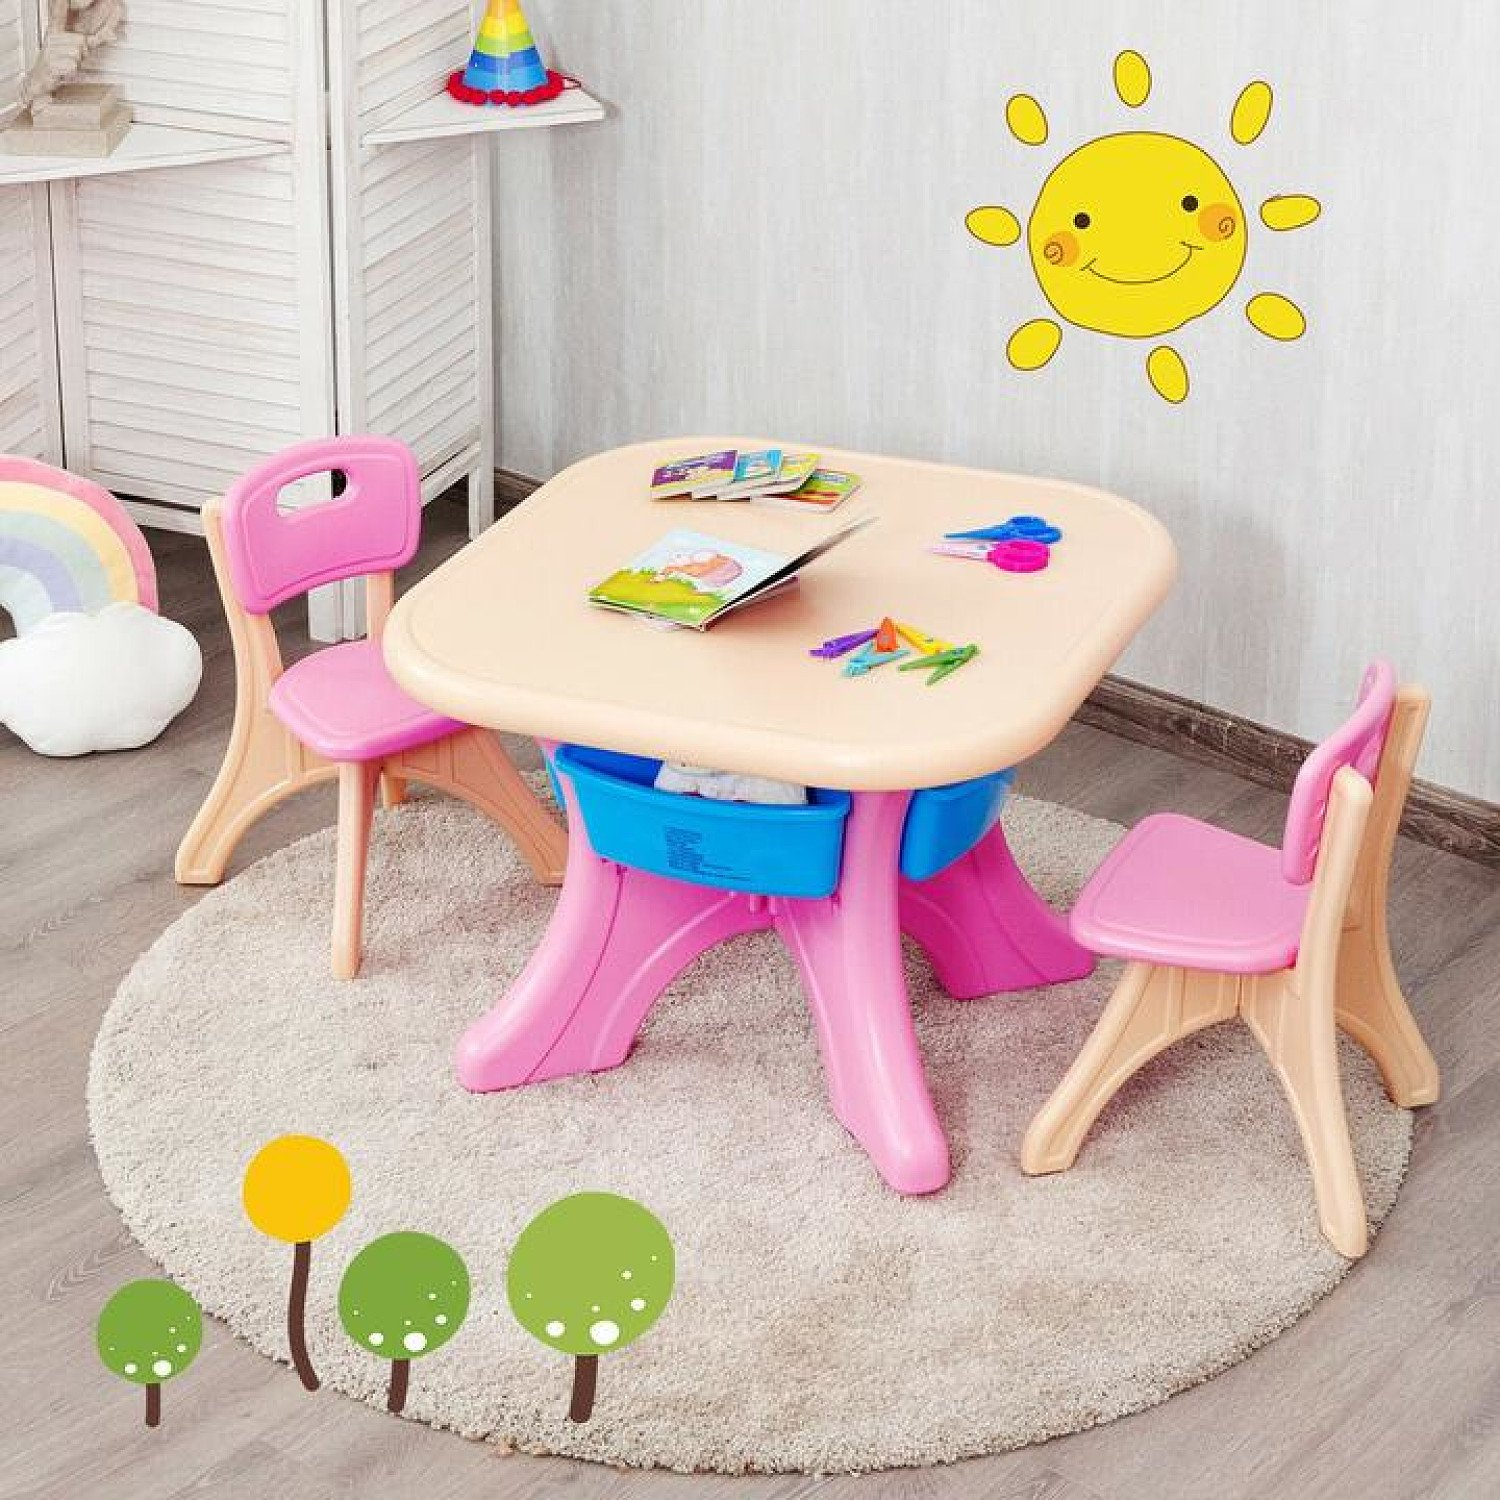 Kid's Table and Chairs Set Children Activity Art Table with Storage Bins Pink Free Postage